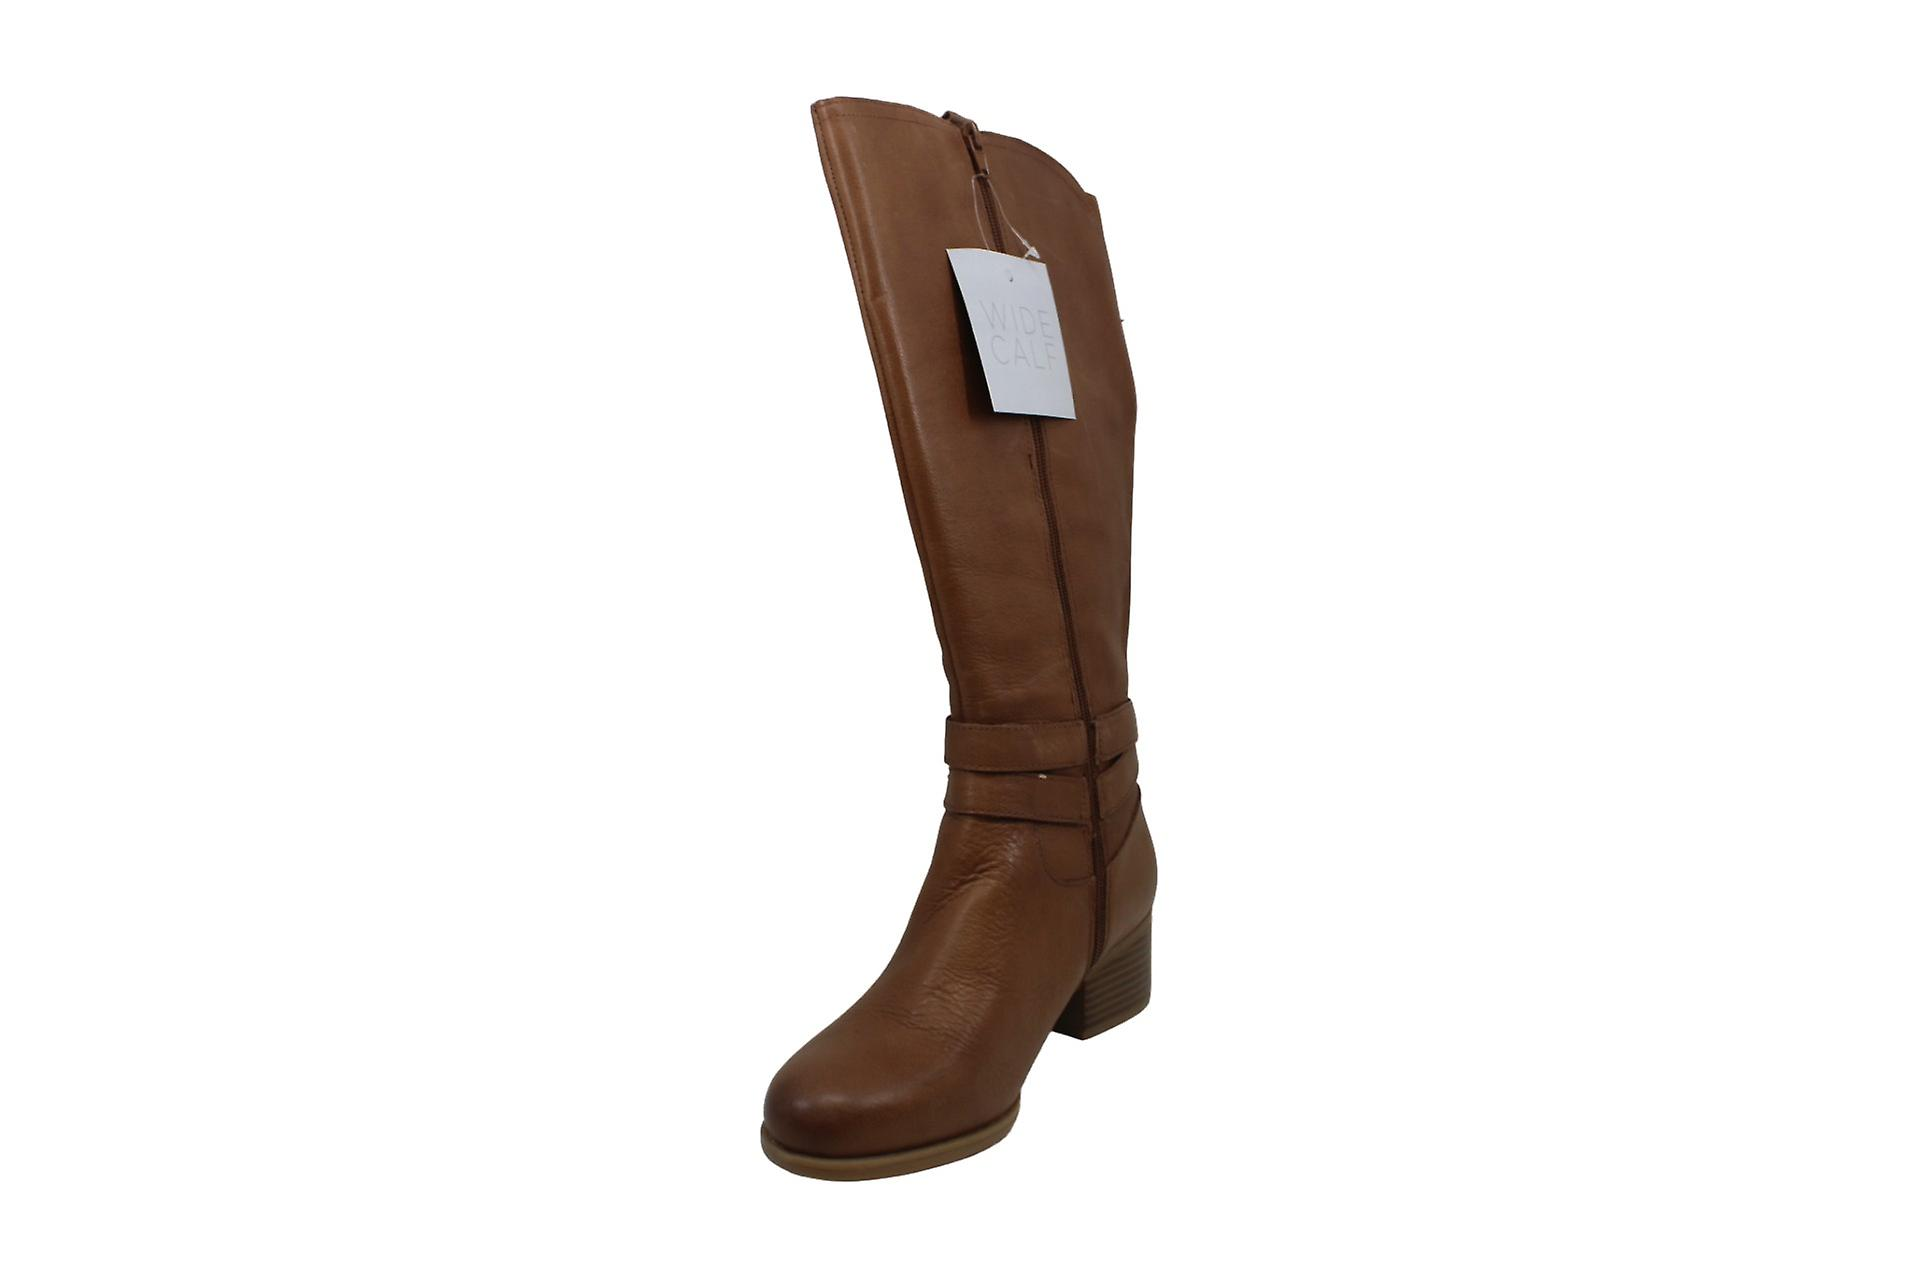 Naturalizer Womens Kim Leather Almond Toe Knee High Fashion Boots